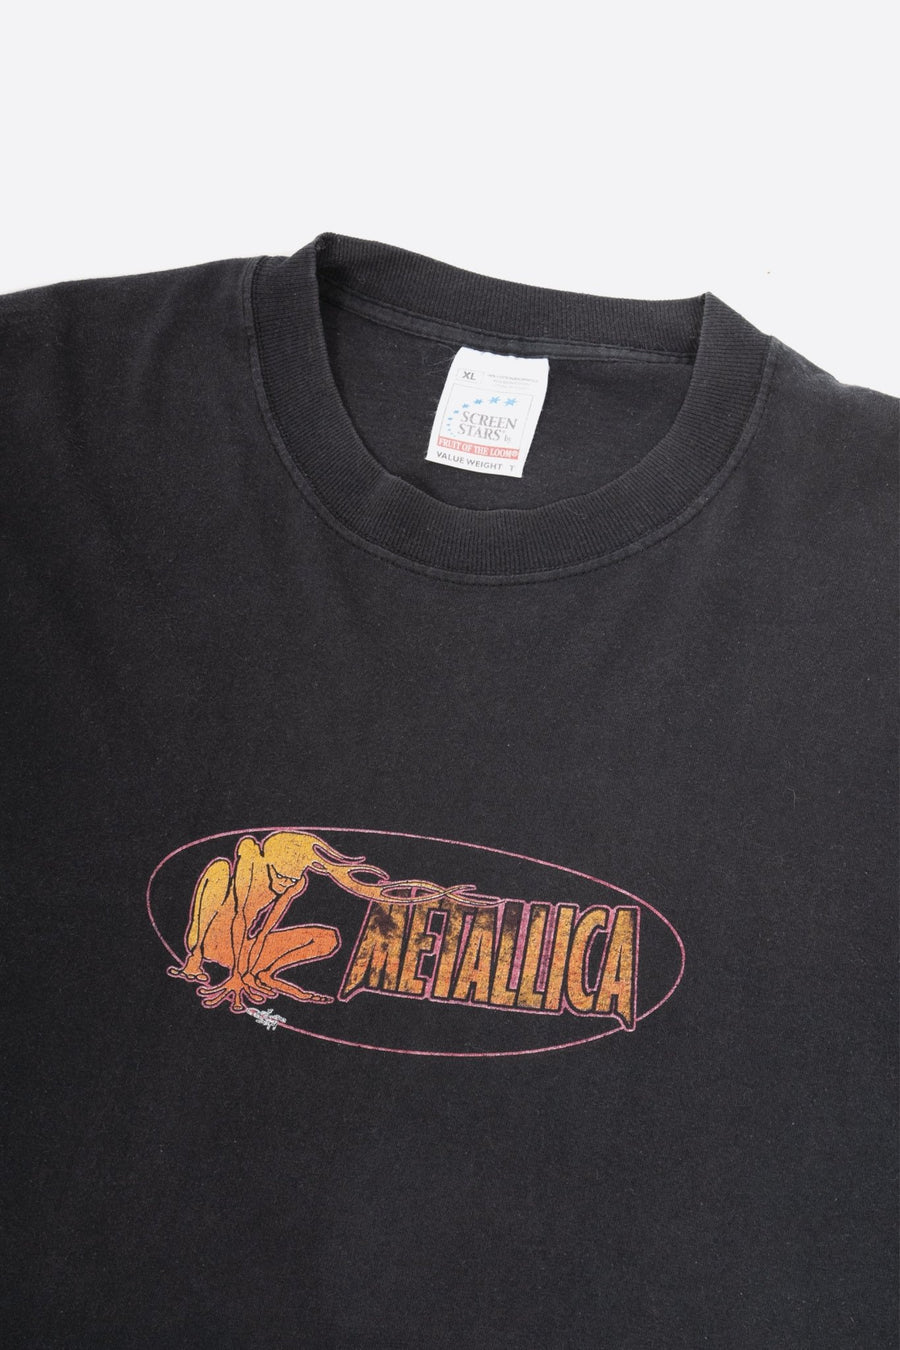 T-shirt Manches Longues Metallica Fire Head 1996 - WASTED PARIS